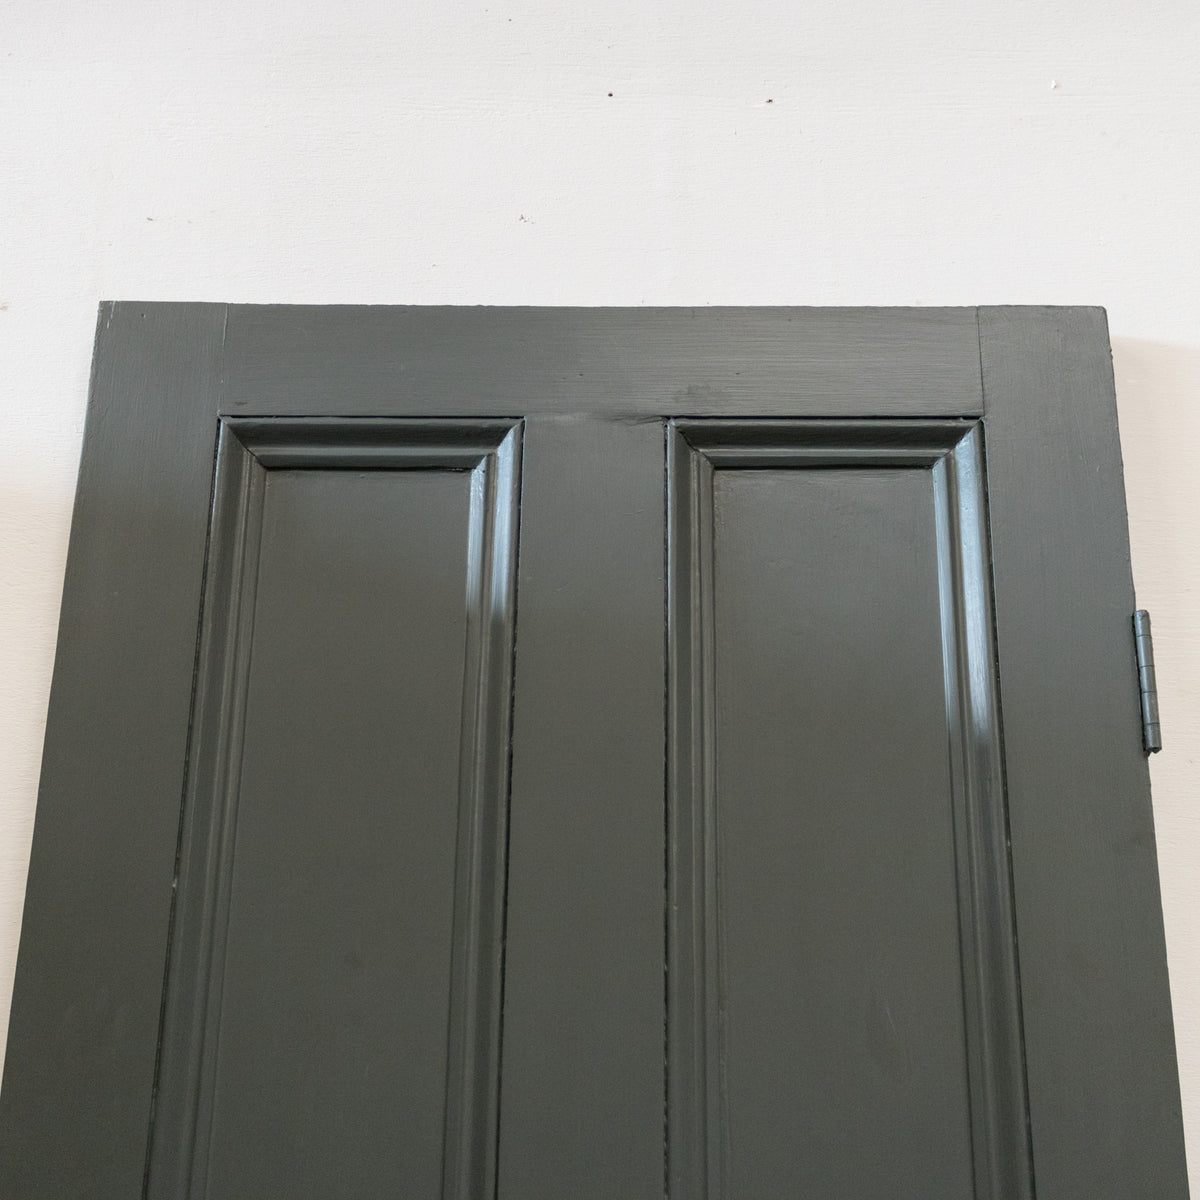 Antique Victorian 4 Panel Door - 200cm x 79.5cm | The Architectural Forum